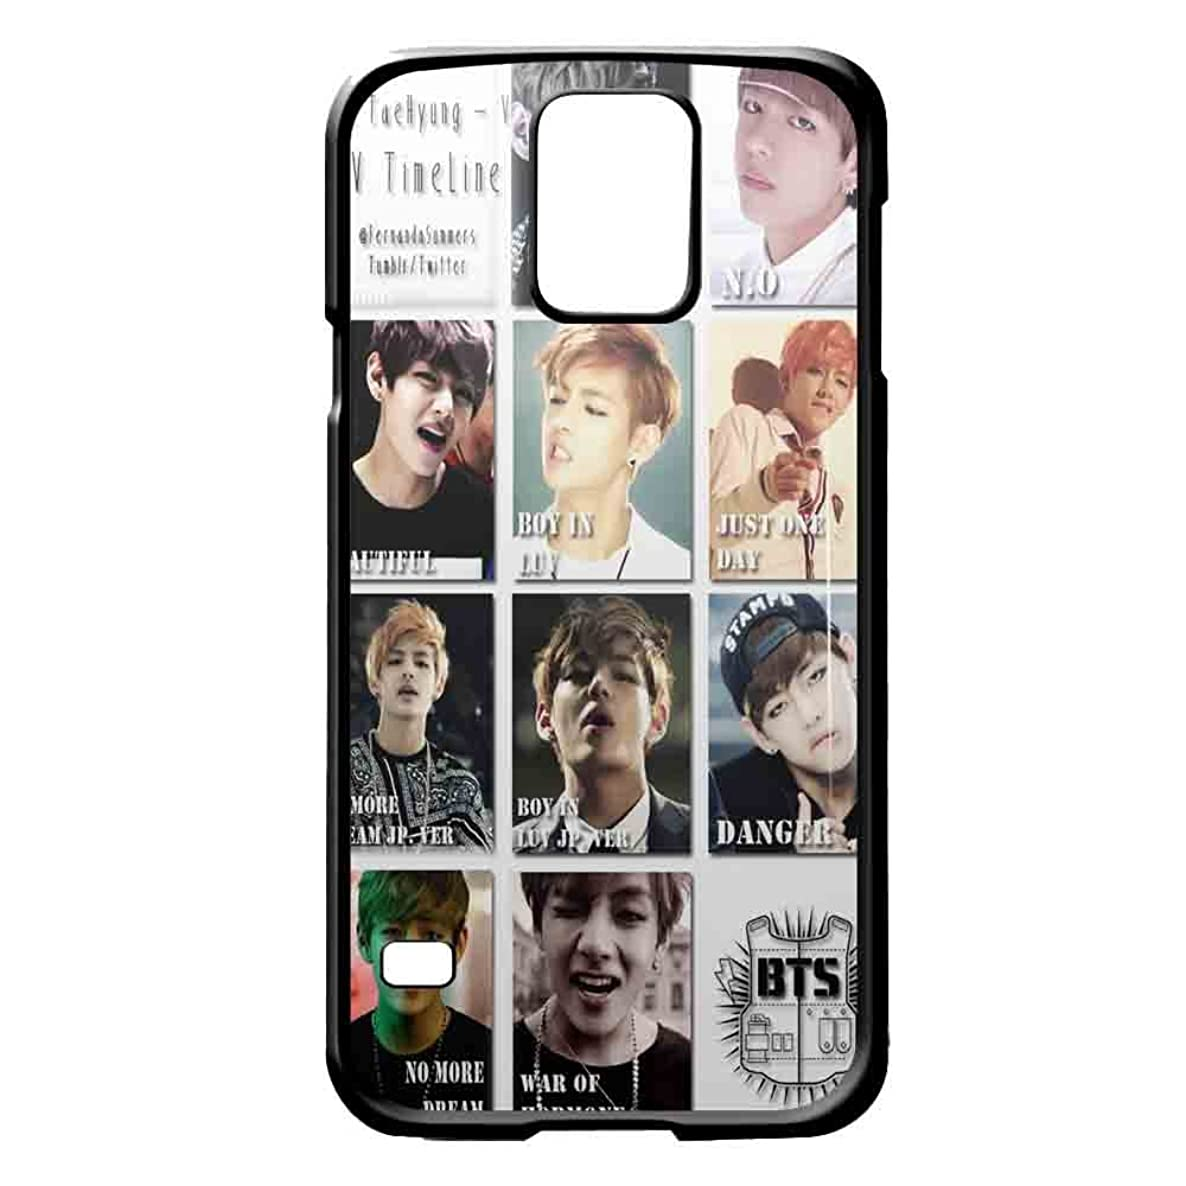 BTS Kim Taehyung collage iPhone case and samsung galaxy case (Samsung Galaxy S5 Black)